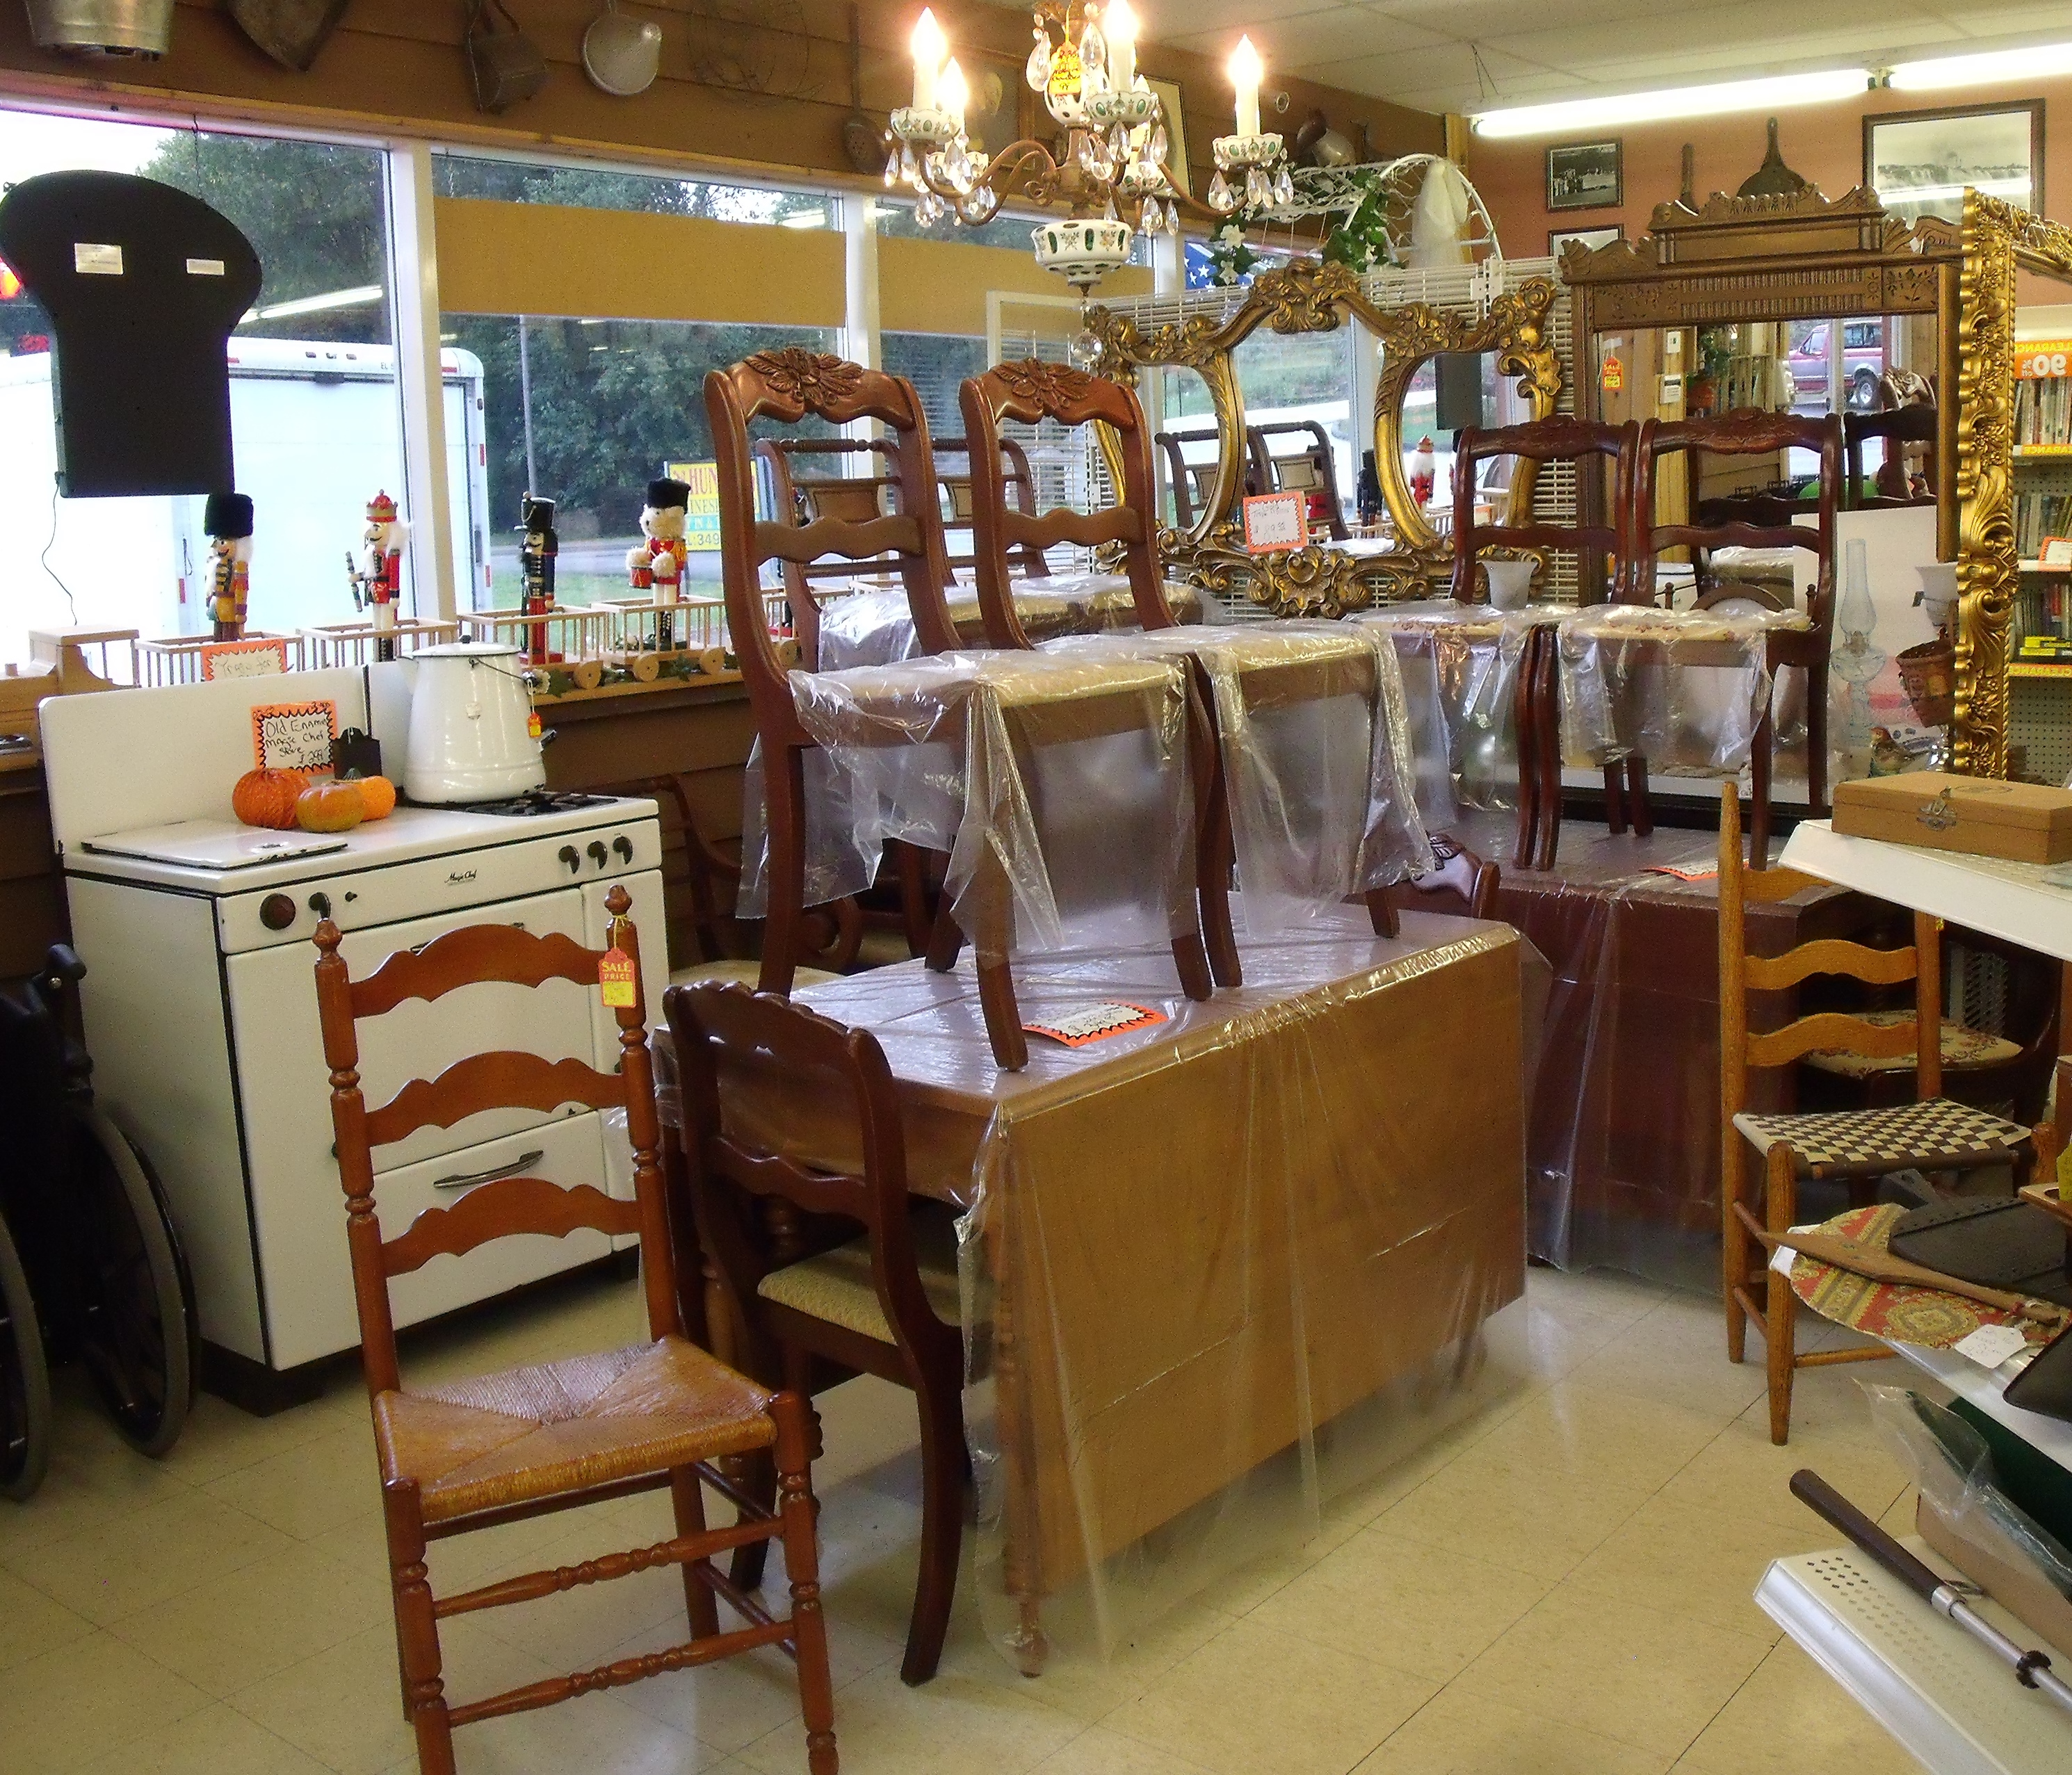 Drop Leaf Tables with Chairs, along with a vintage chandelier, and a few cane bottom chairs.